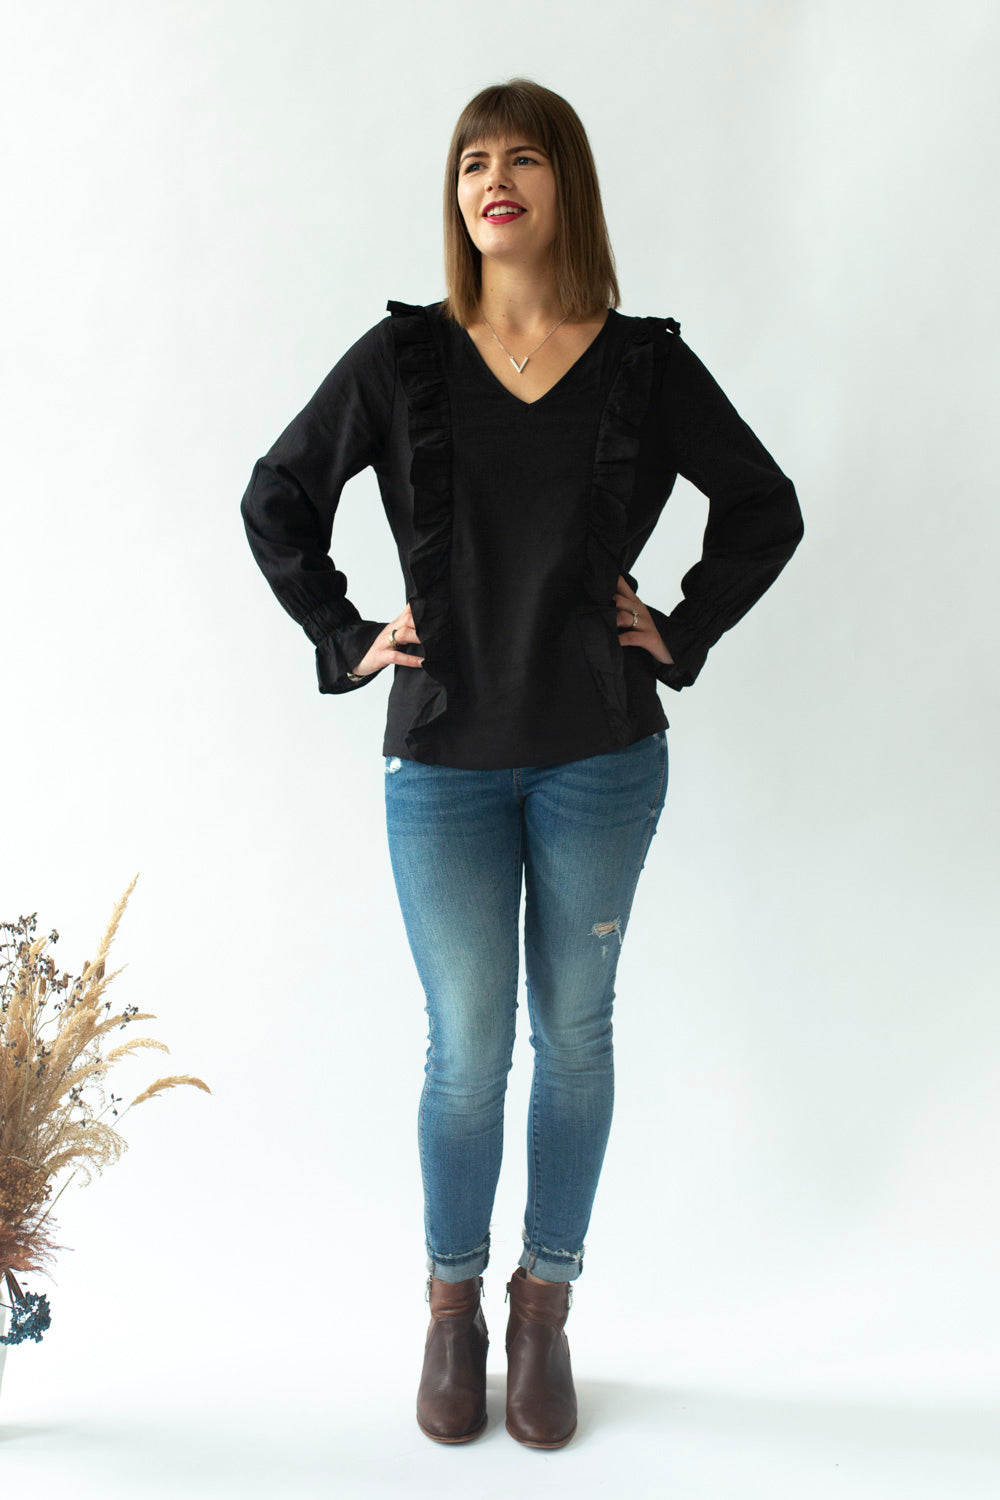 Ruffle Top in Black - Close To The Heart